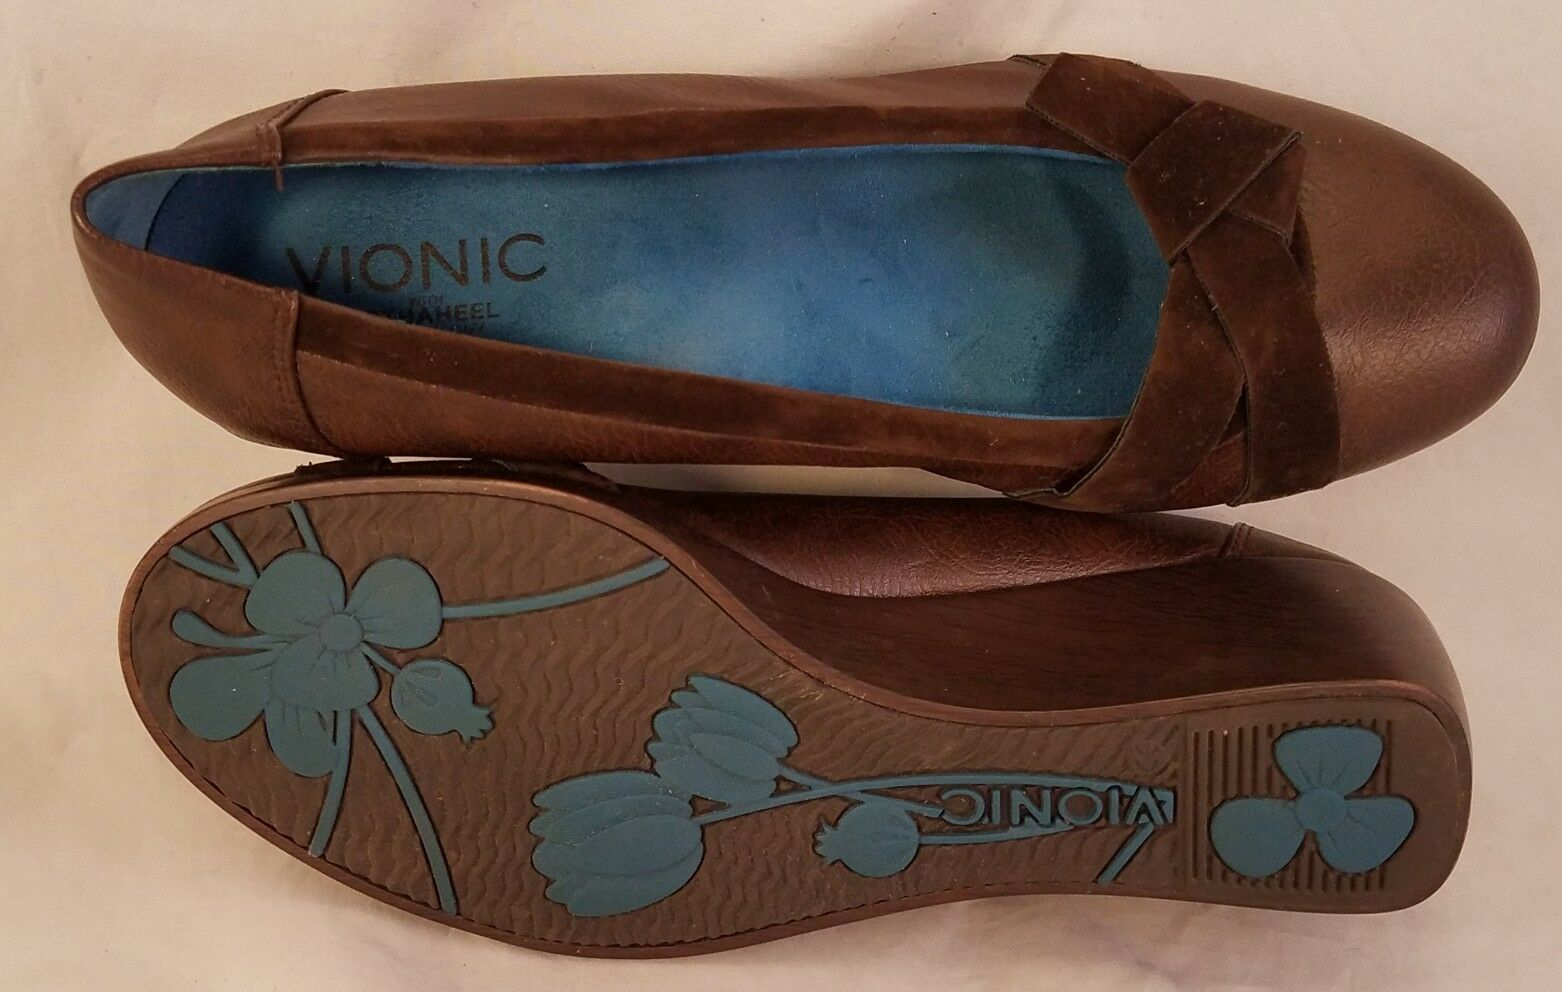 VIONIC ORTHAHEEL WOMAN SHOES WEDGES PLATFORM LOAFERS BROWN SIZE SIZE SIZE 39.5  US 8.5 3c6923